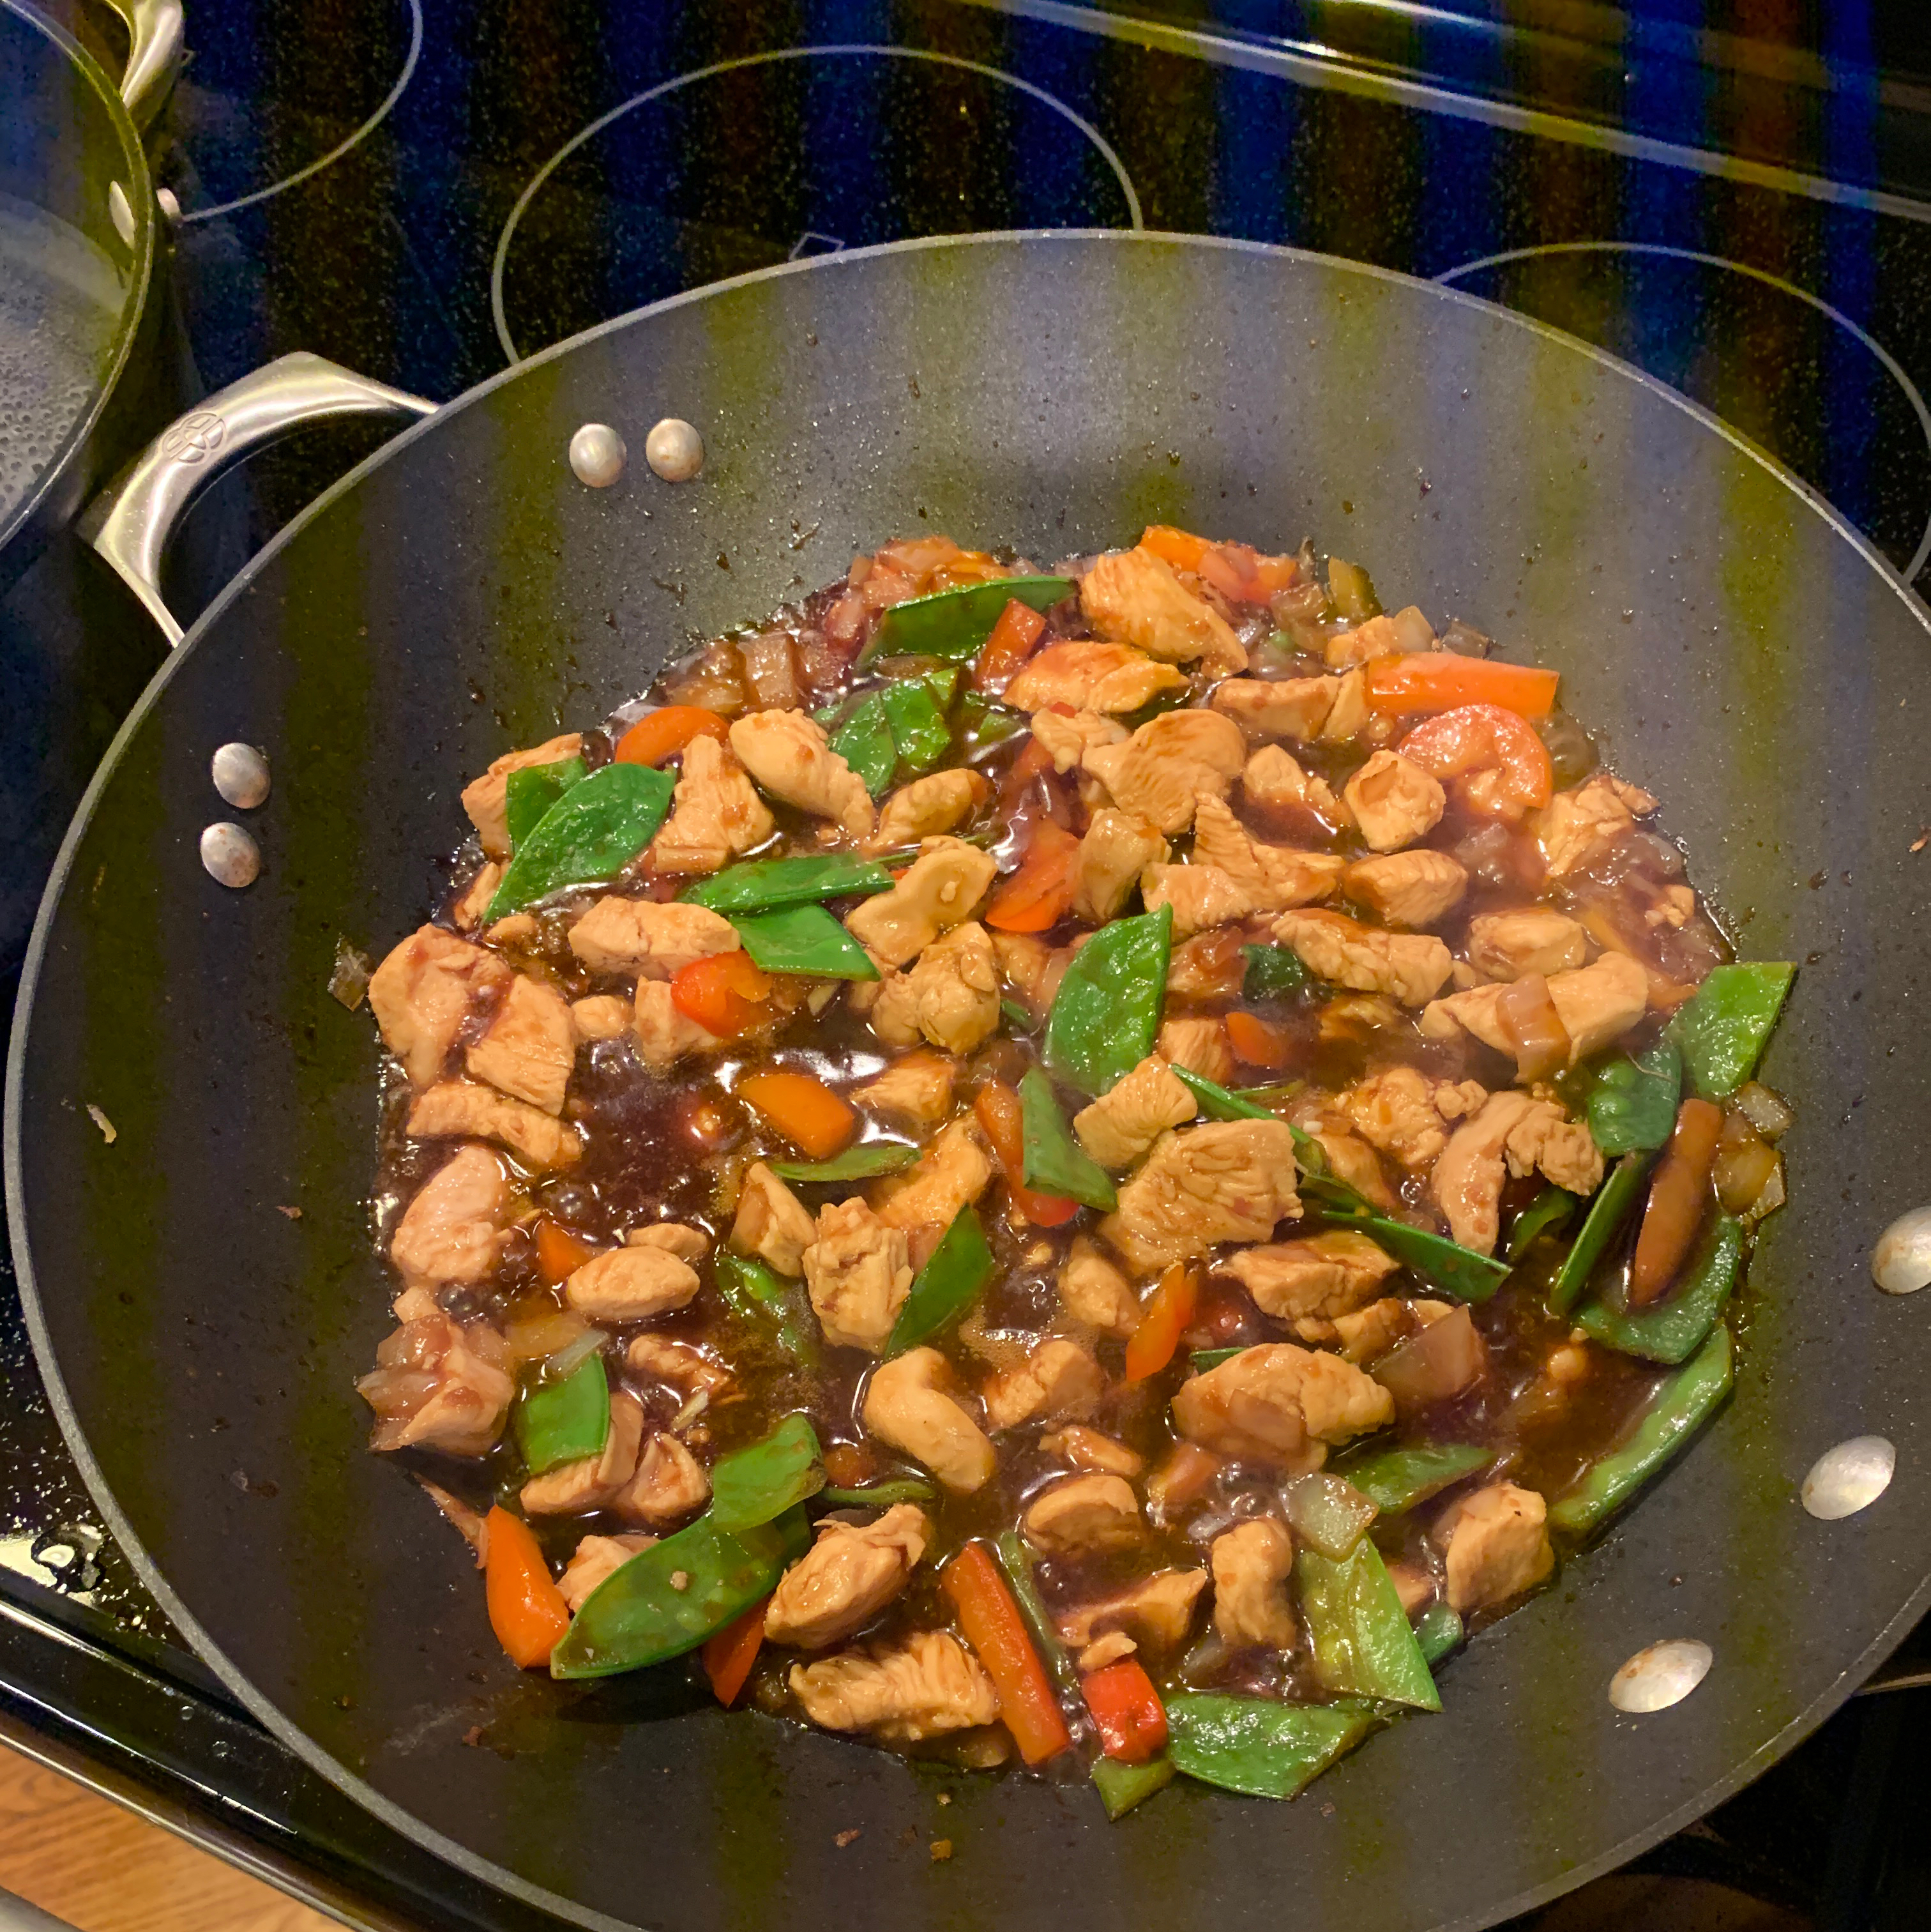 Ginger-Chicken Stir-Fry Acework